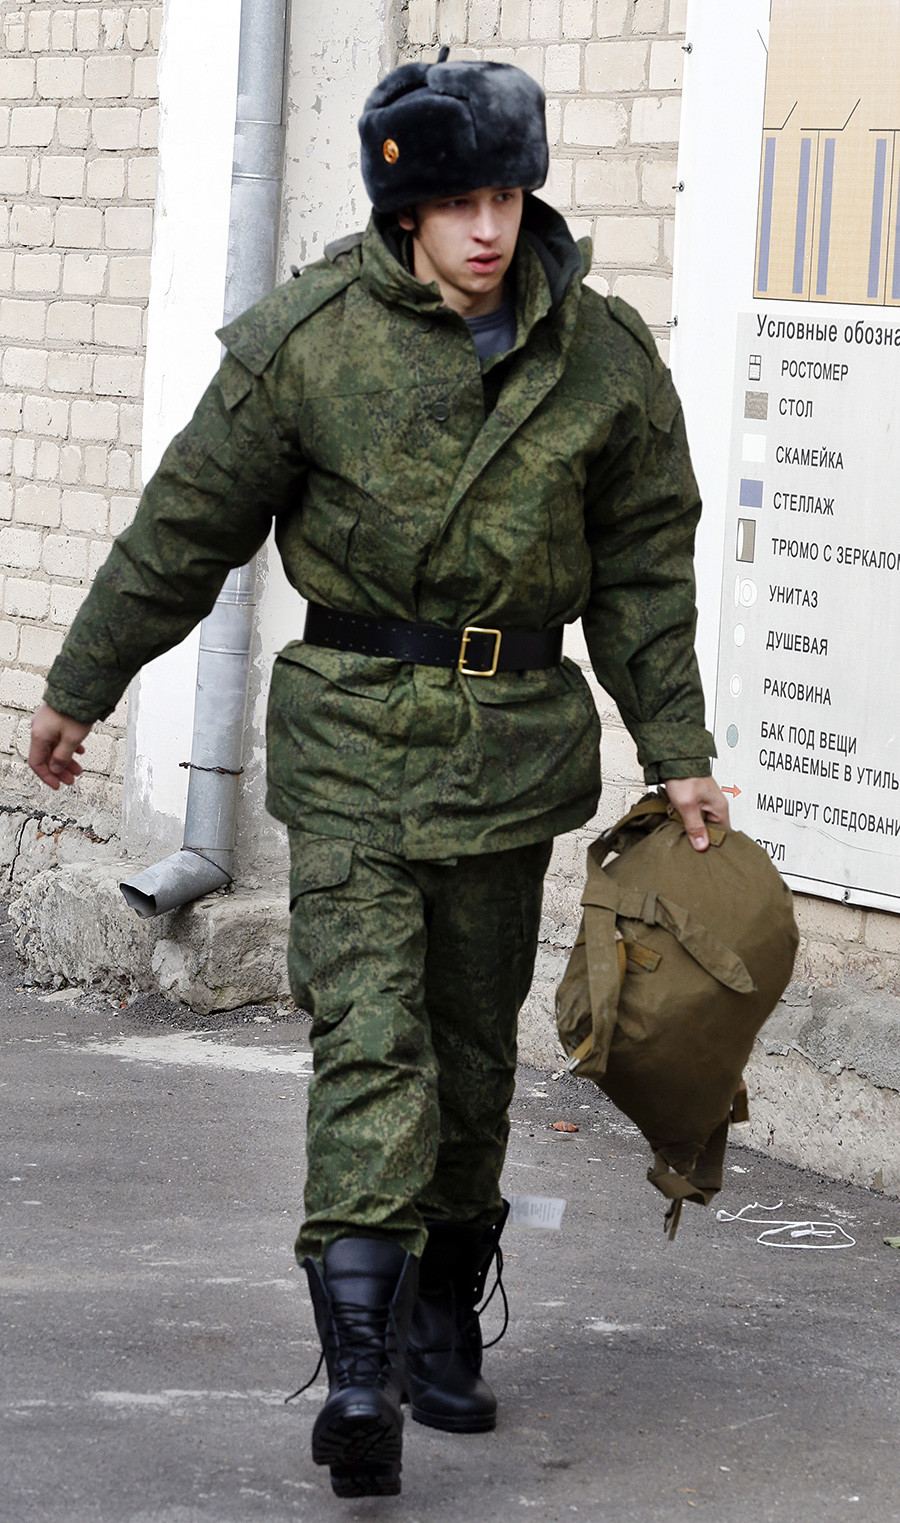 A conscript in military uniform at a recruiting station in the town of Bataisk.